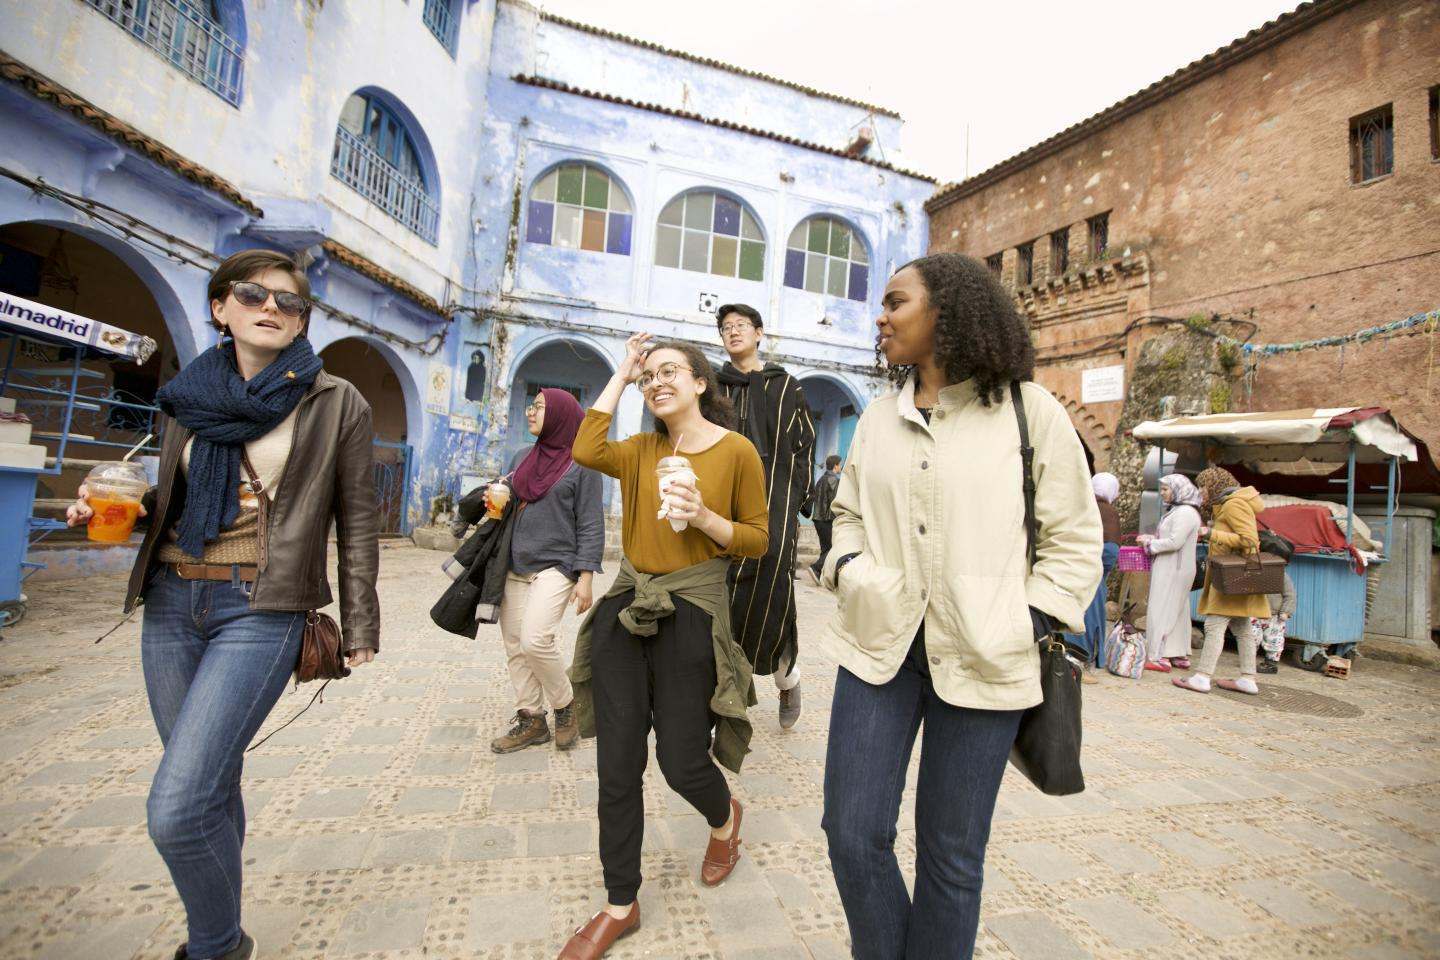 Students walk through a busy square in Morocco.